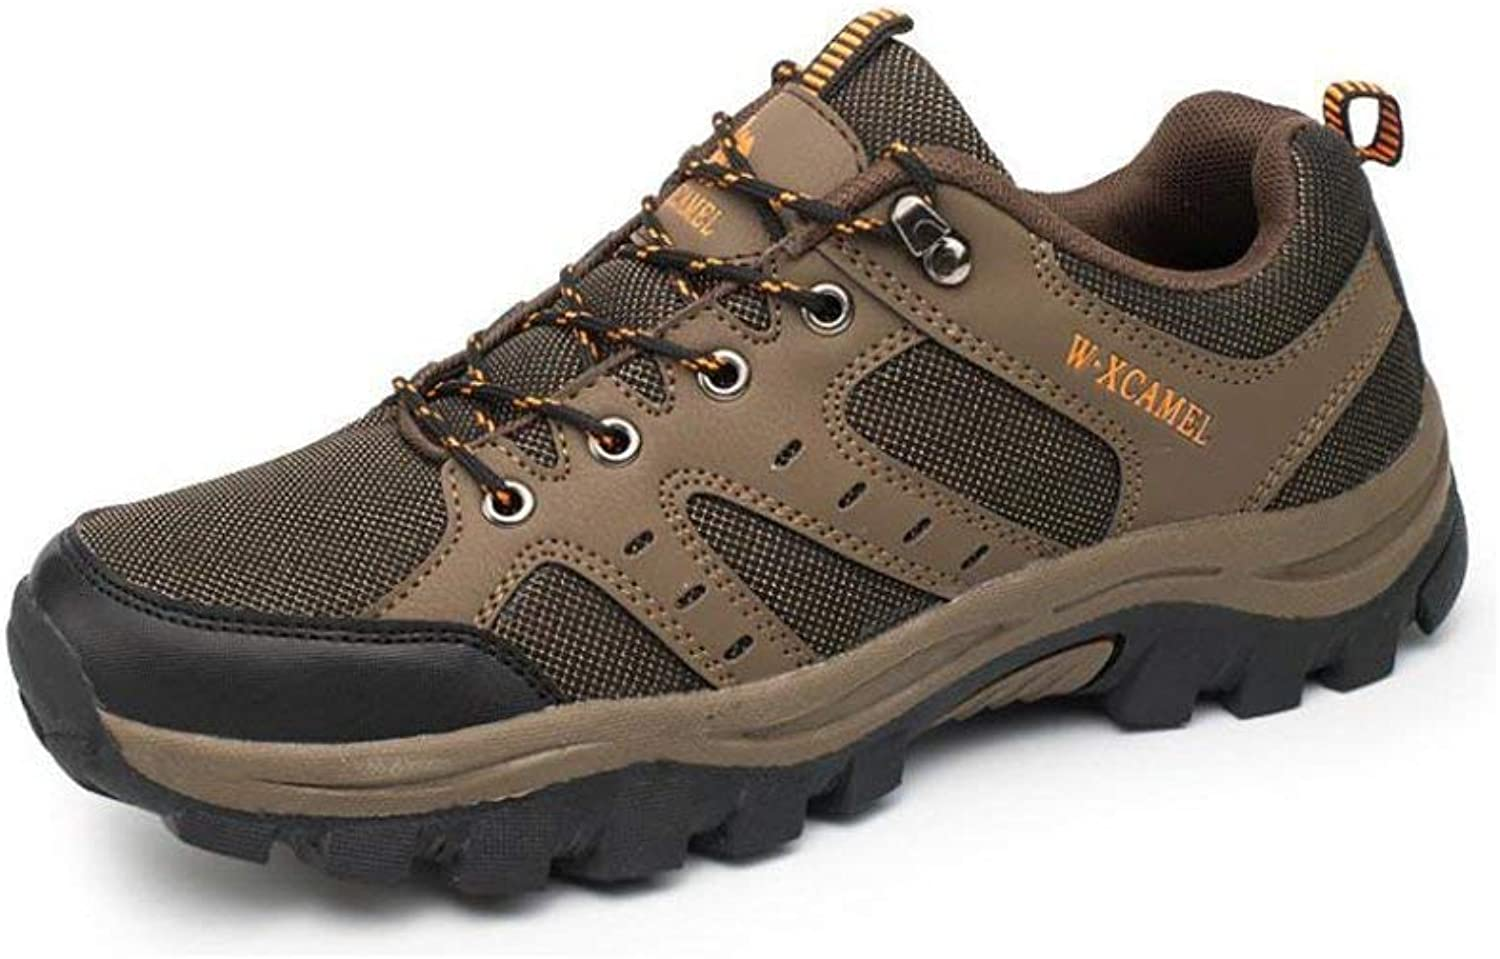 FuweiEncore Walking shoes, Men's shoes - Lightweight shoes, Mesh Lining shoes, Heel & Toe Bumper - For Hiking, Hiking, Traveling This Summer, B, 42 (color   As shown, Size   One size)